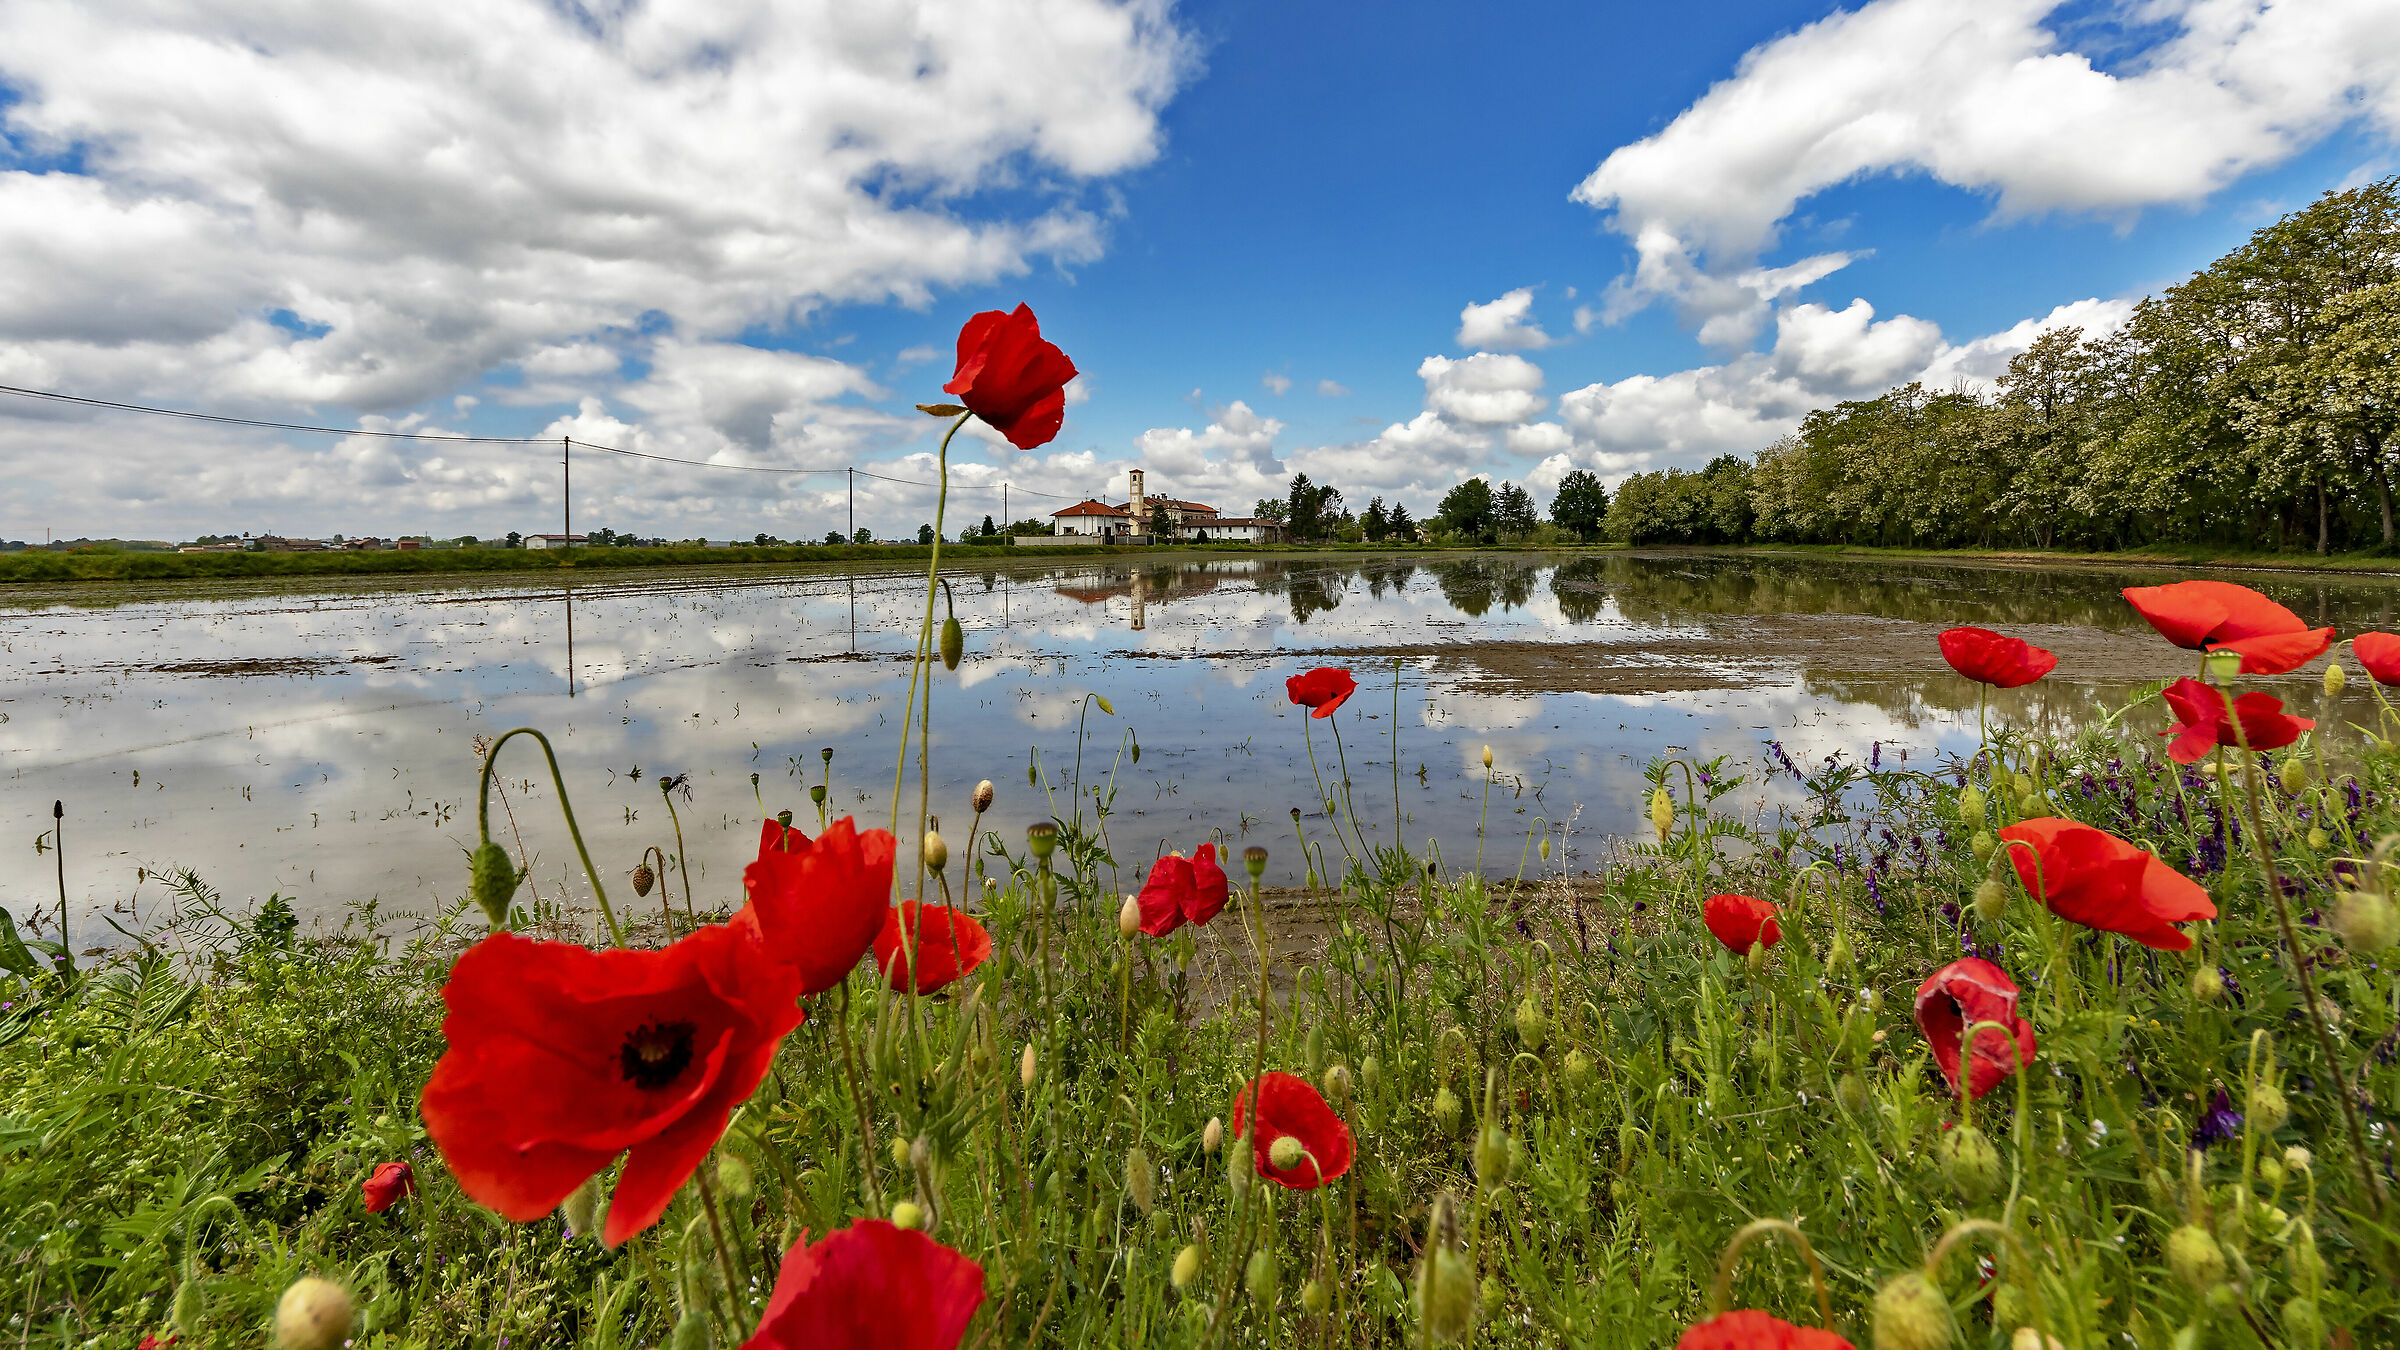 Poppies without Ducks...